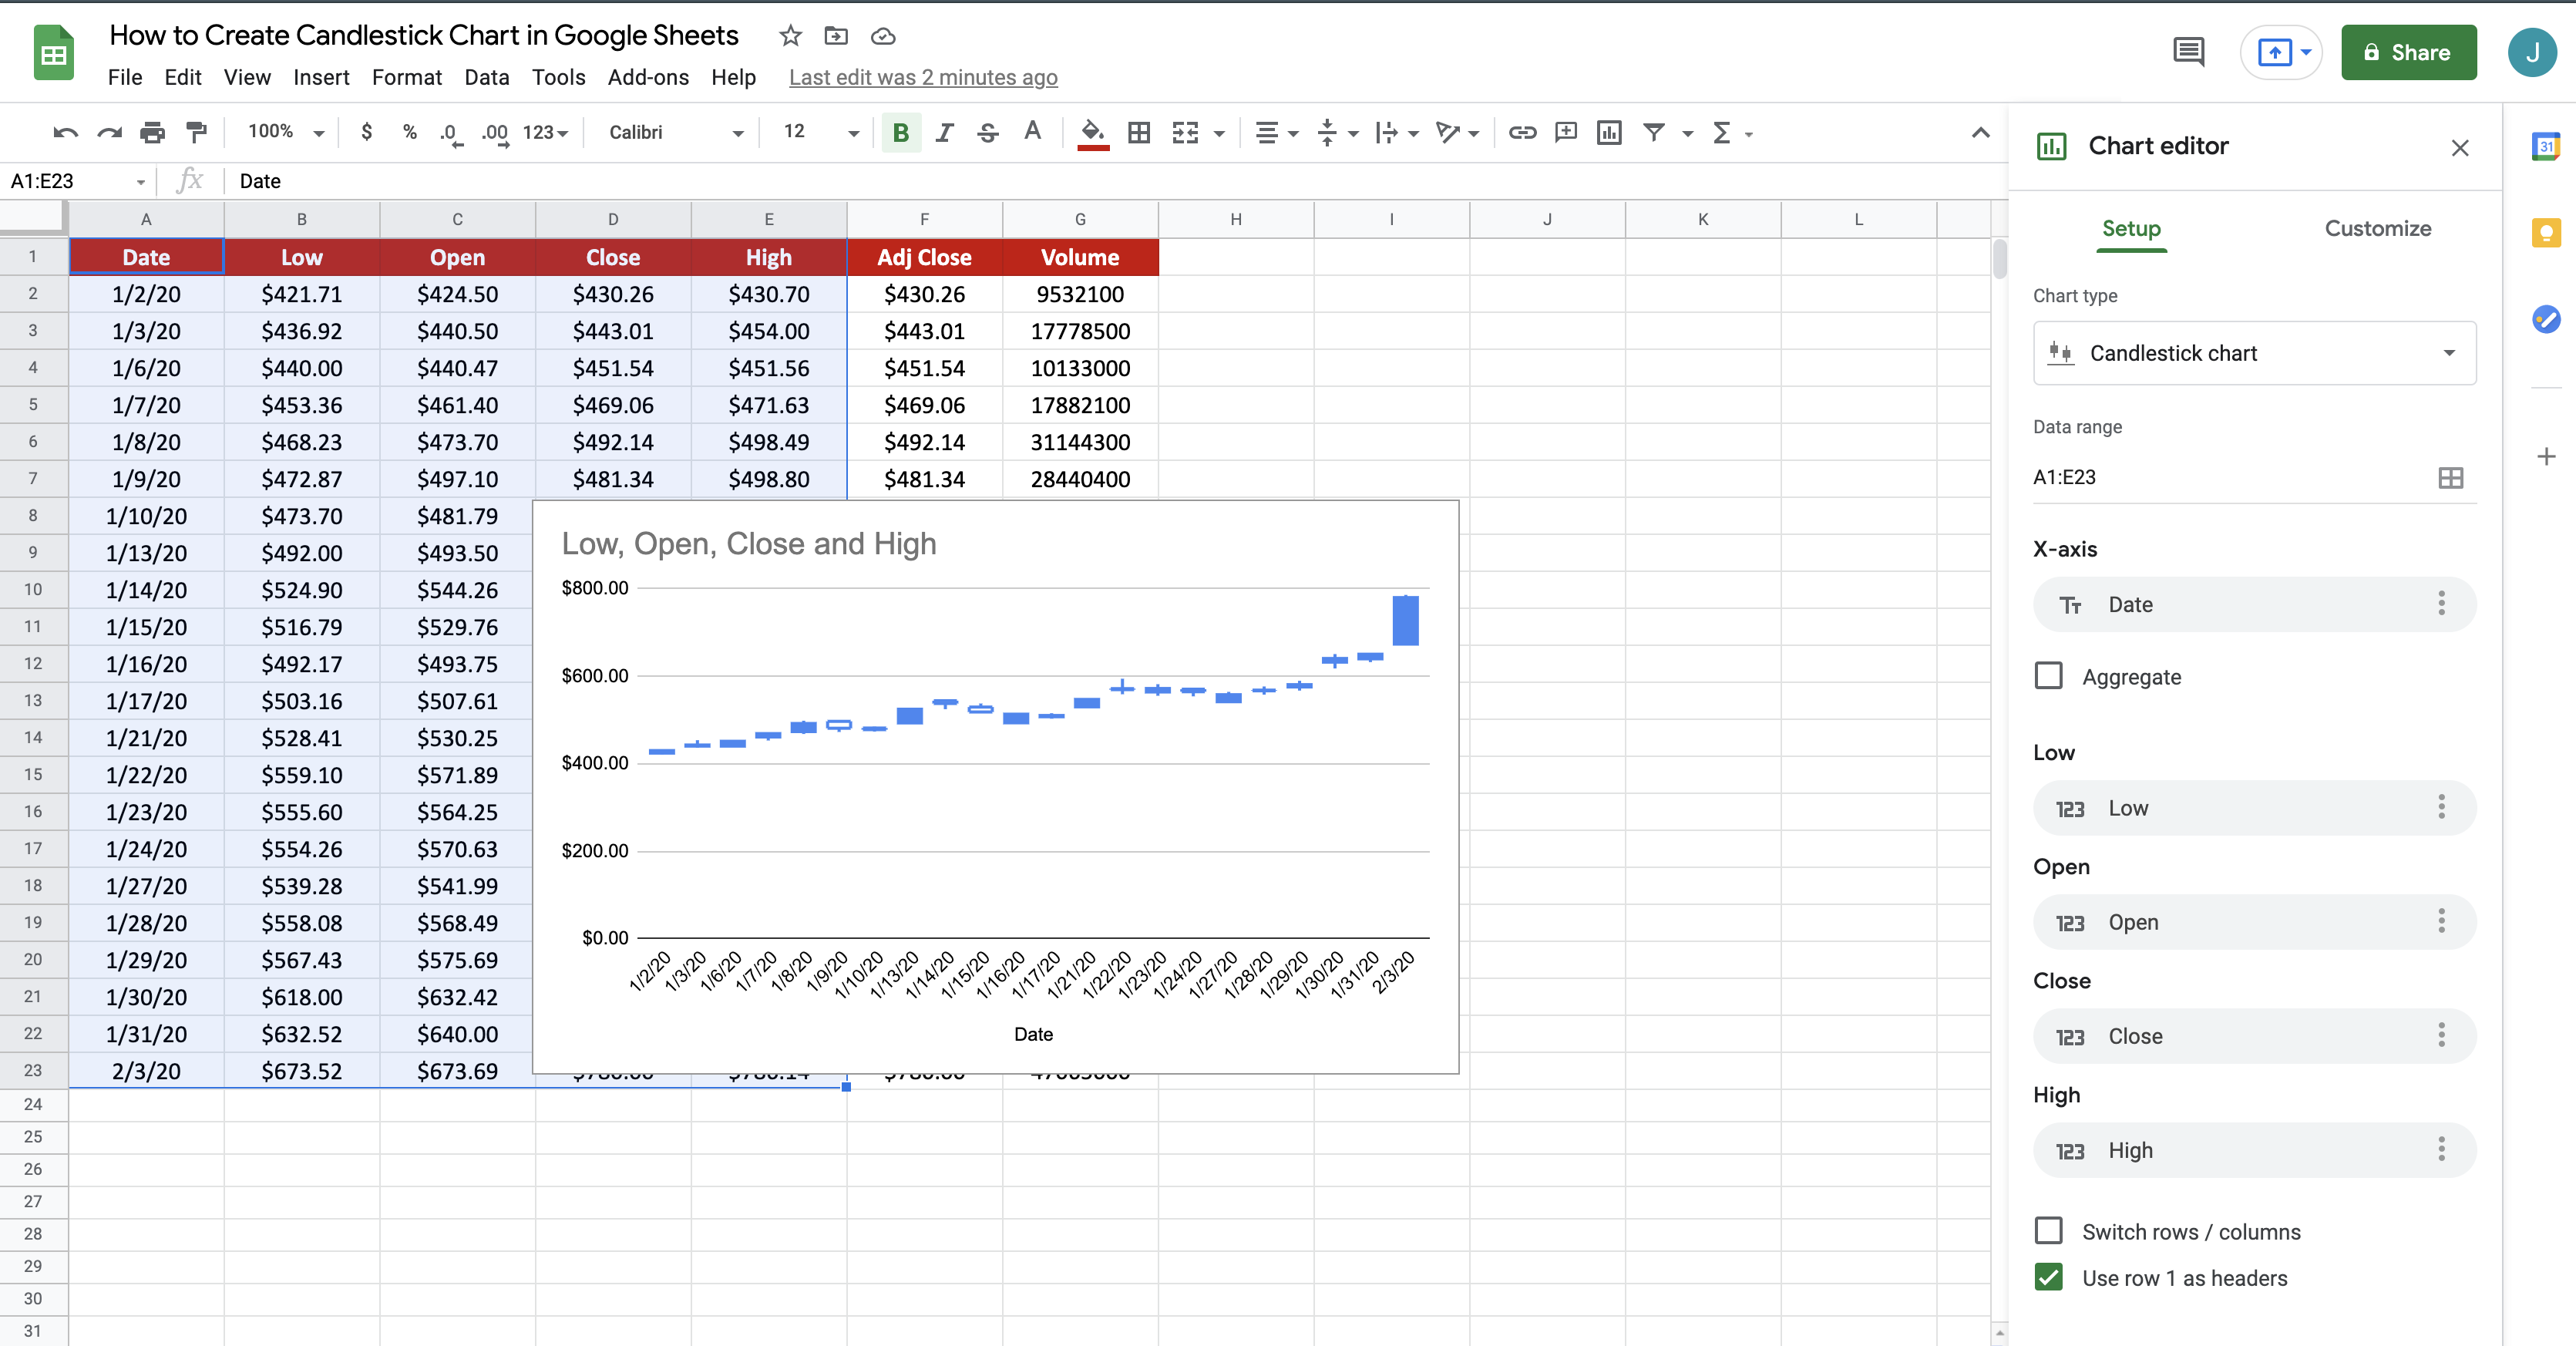 Candlestick charts in Google Sheets